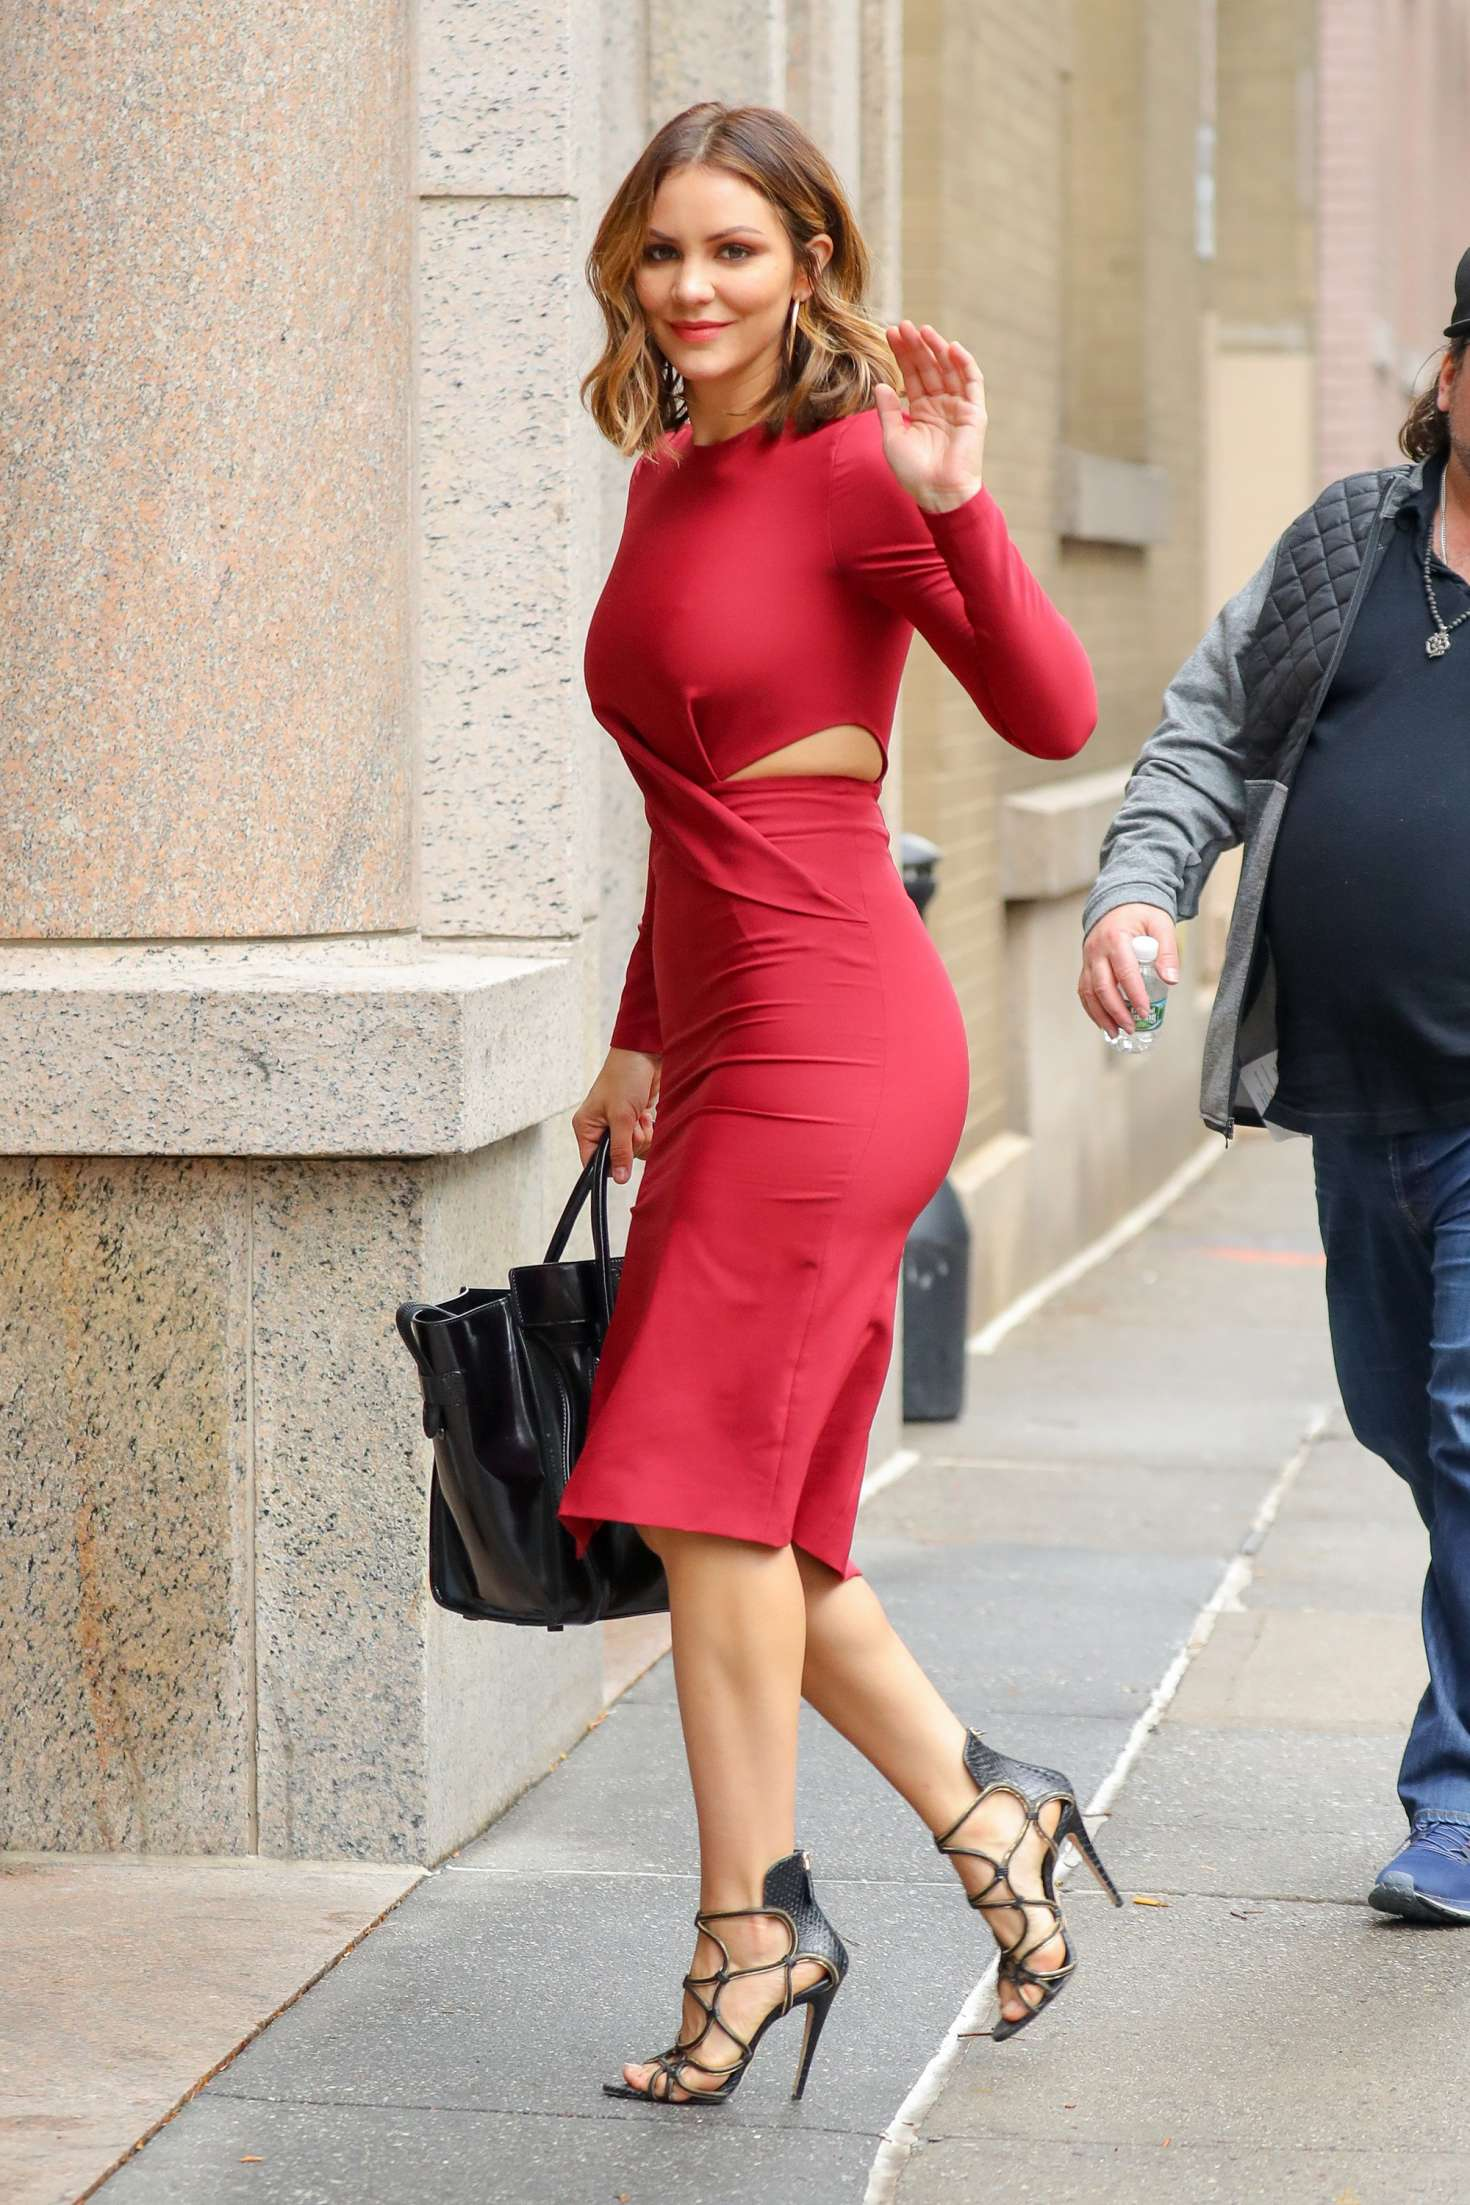 20 Square Metres Katharine Mcphee In Red Dress At Abc Studios In New York